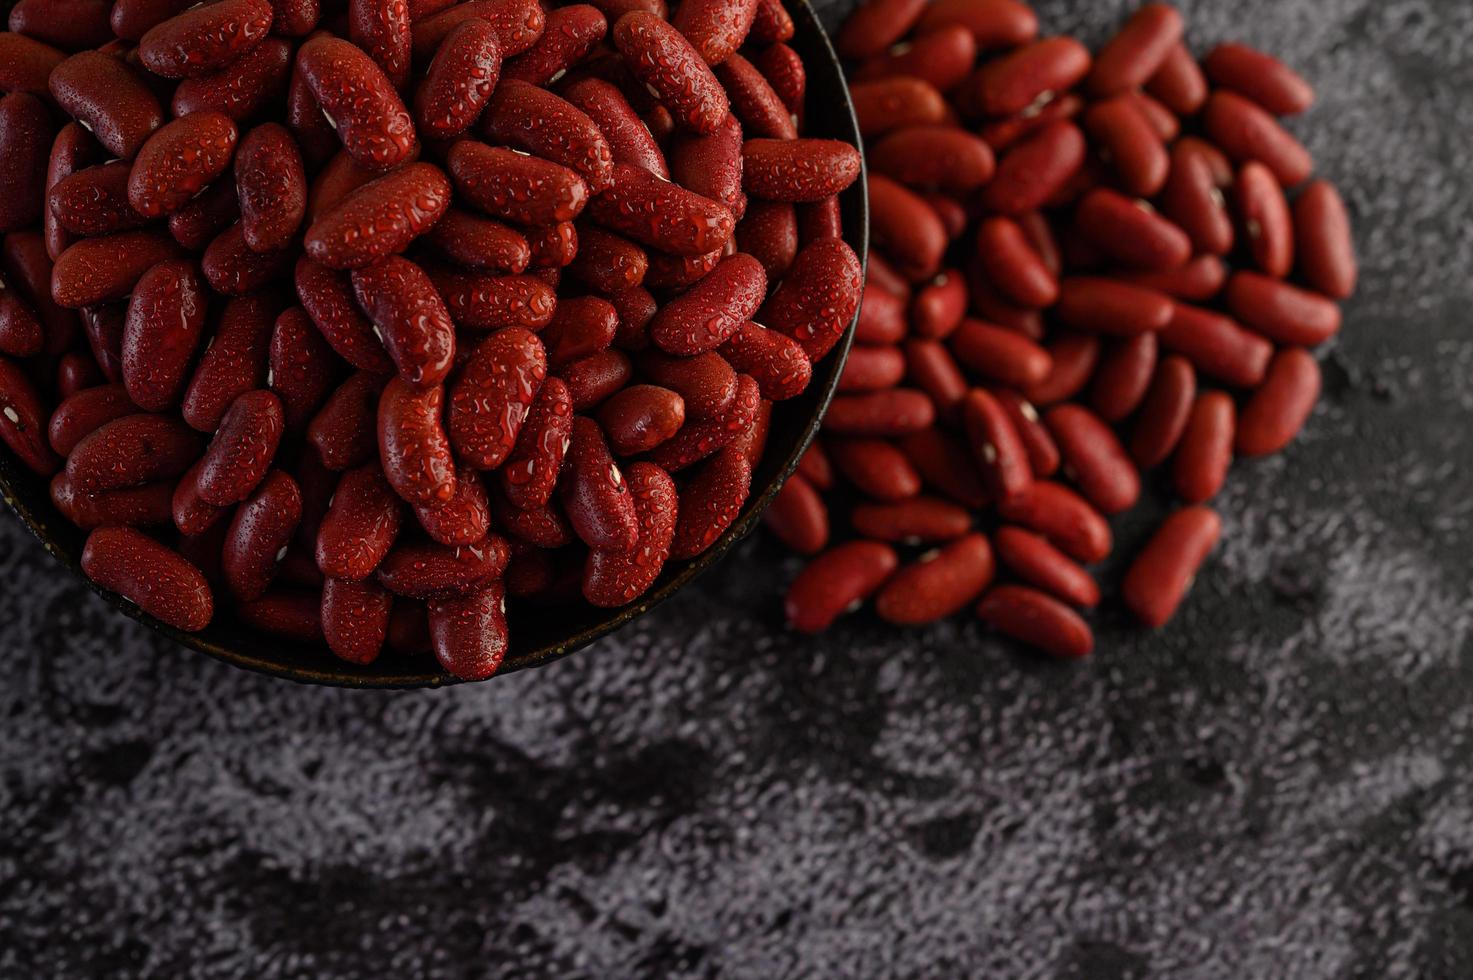 Red beans with water spray on cement background photo